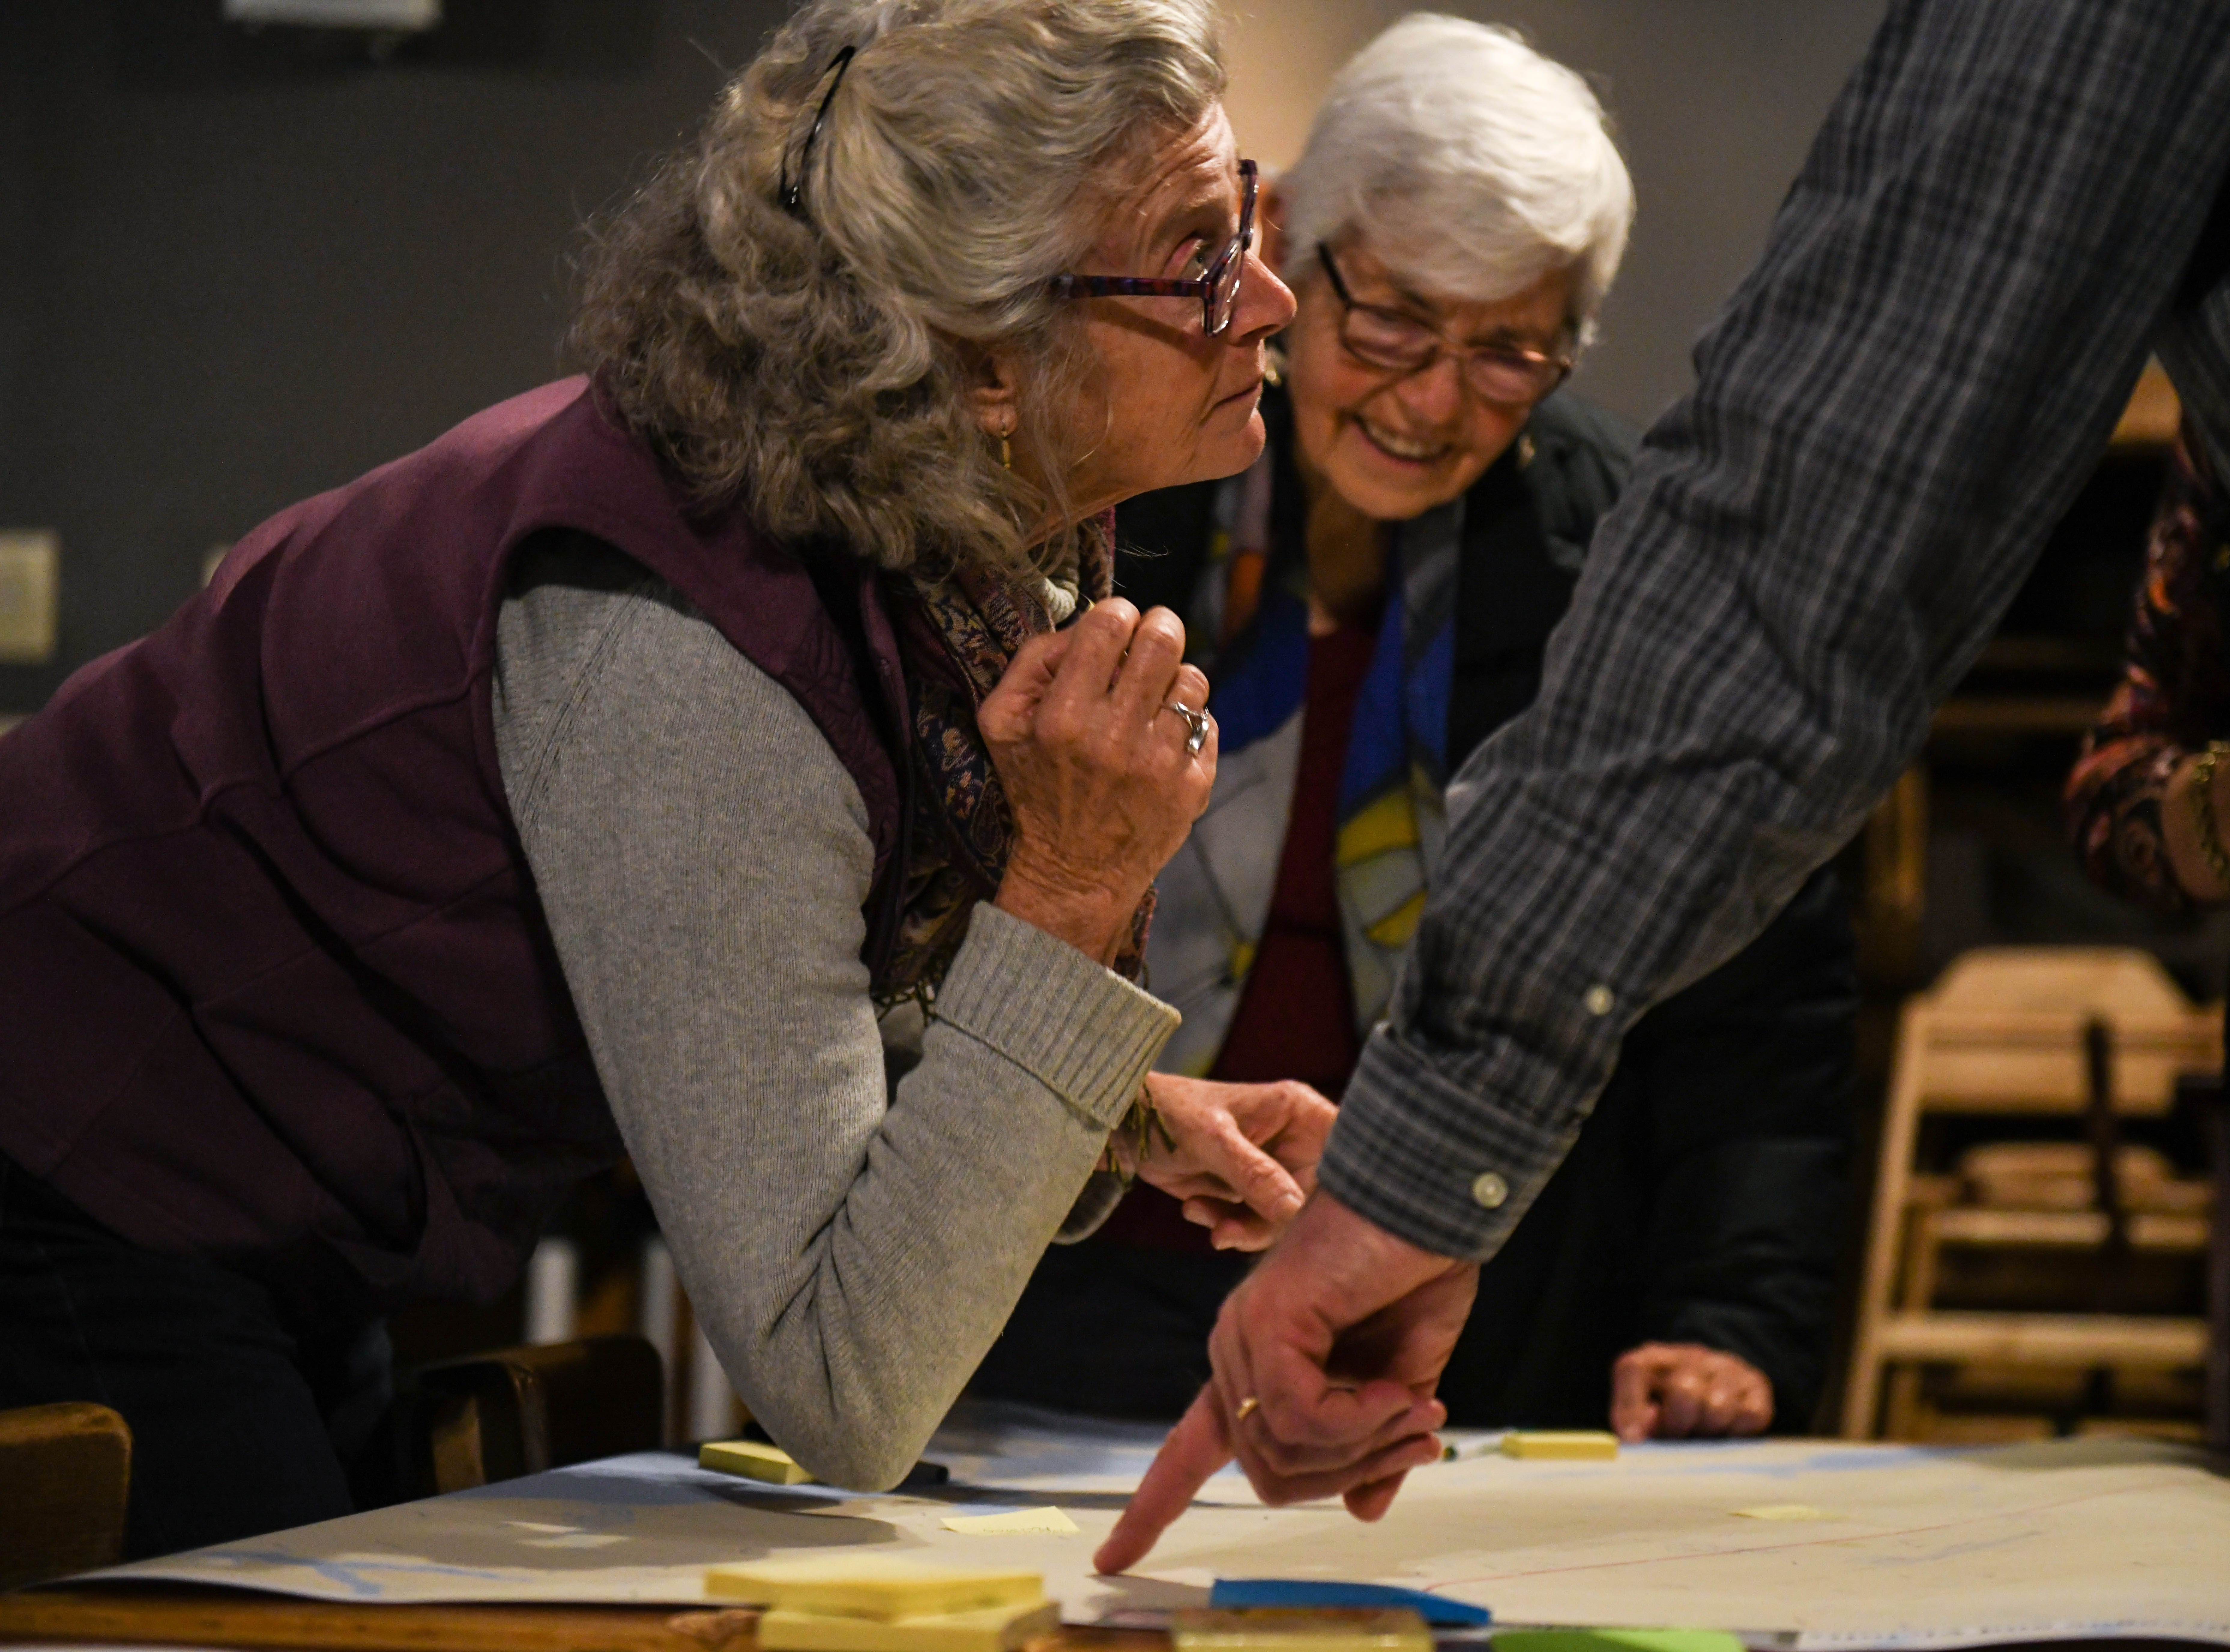 Local resident, Lloyd Johnston, maps local flooding at a community meeting in Wachapreague, Virginia led by the Nature Conservancy on Monday, March 4, 2019.